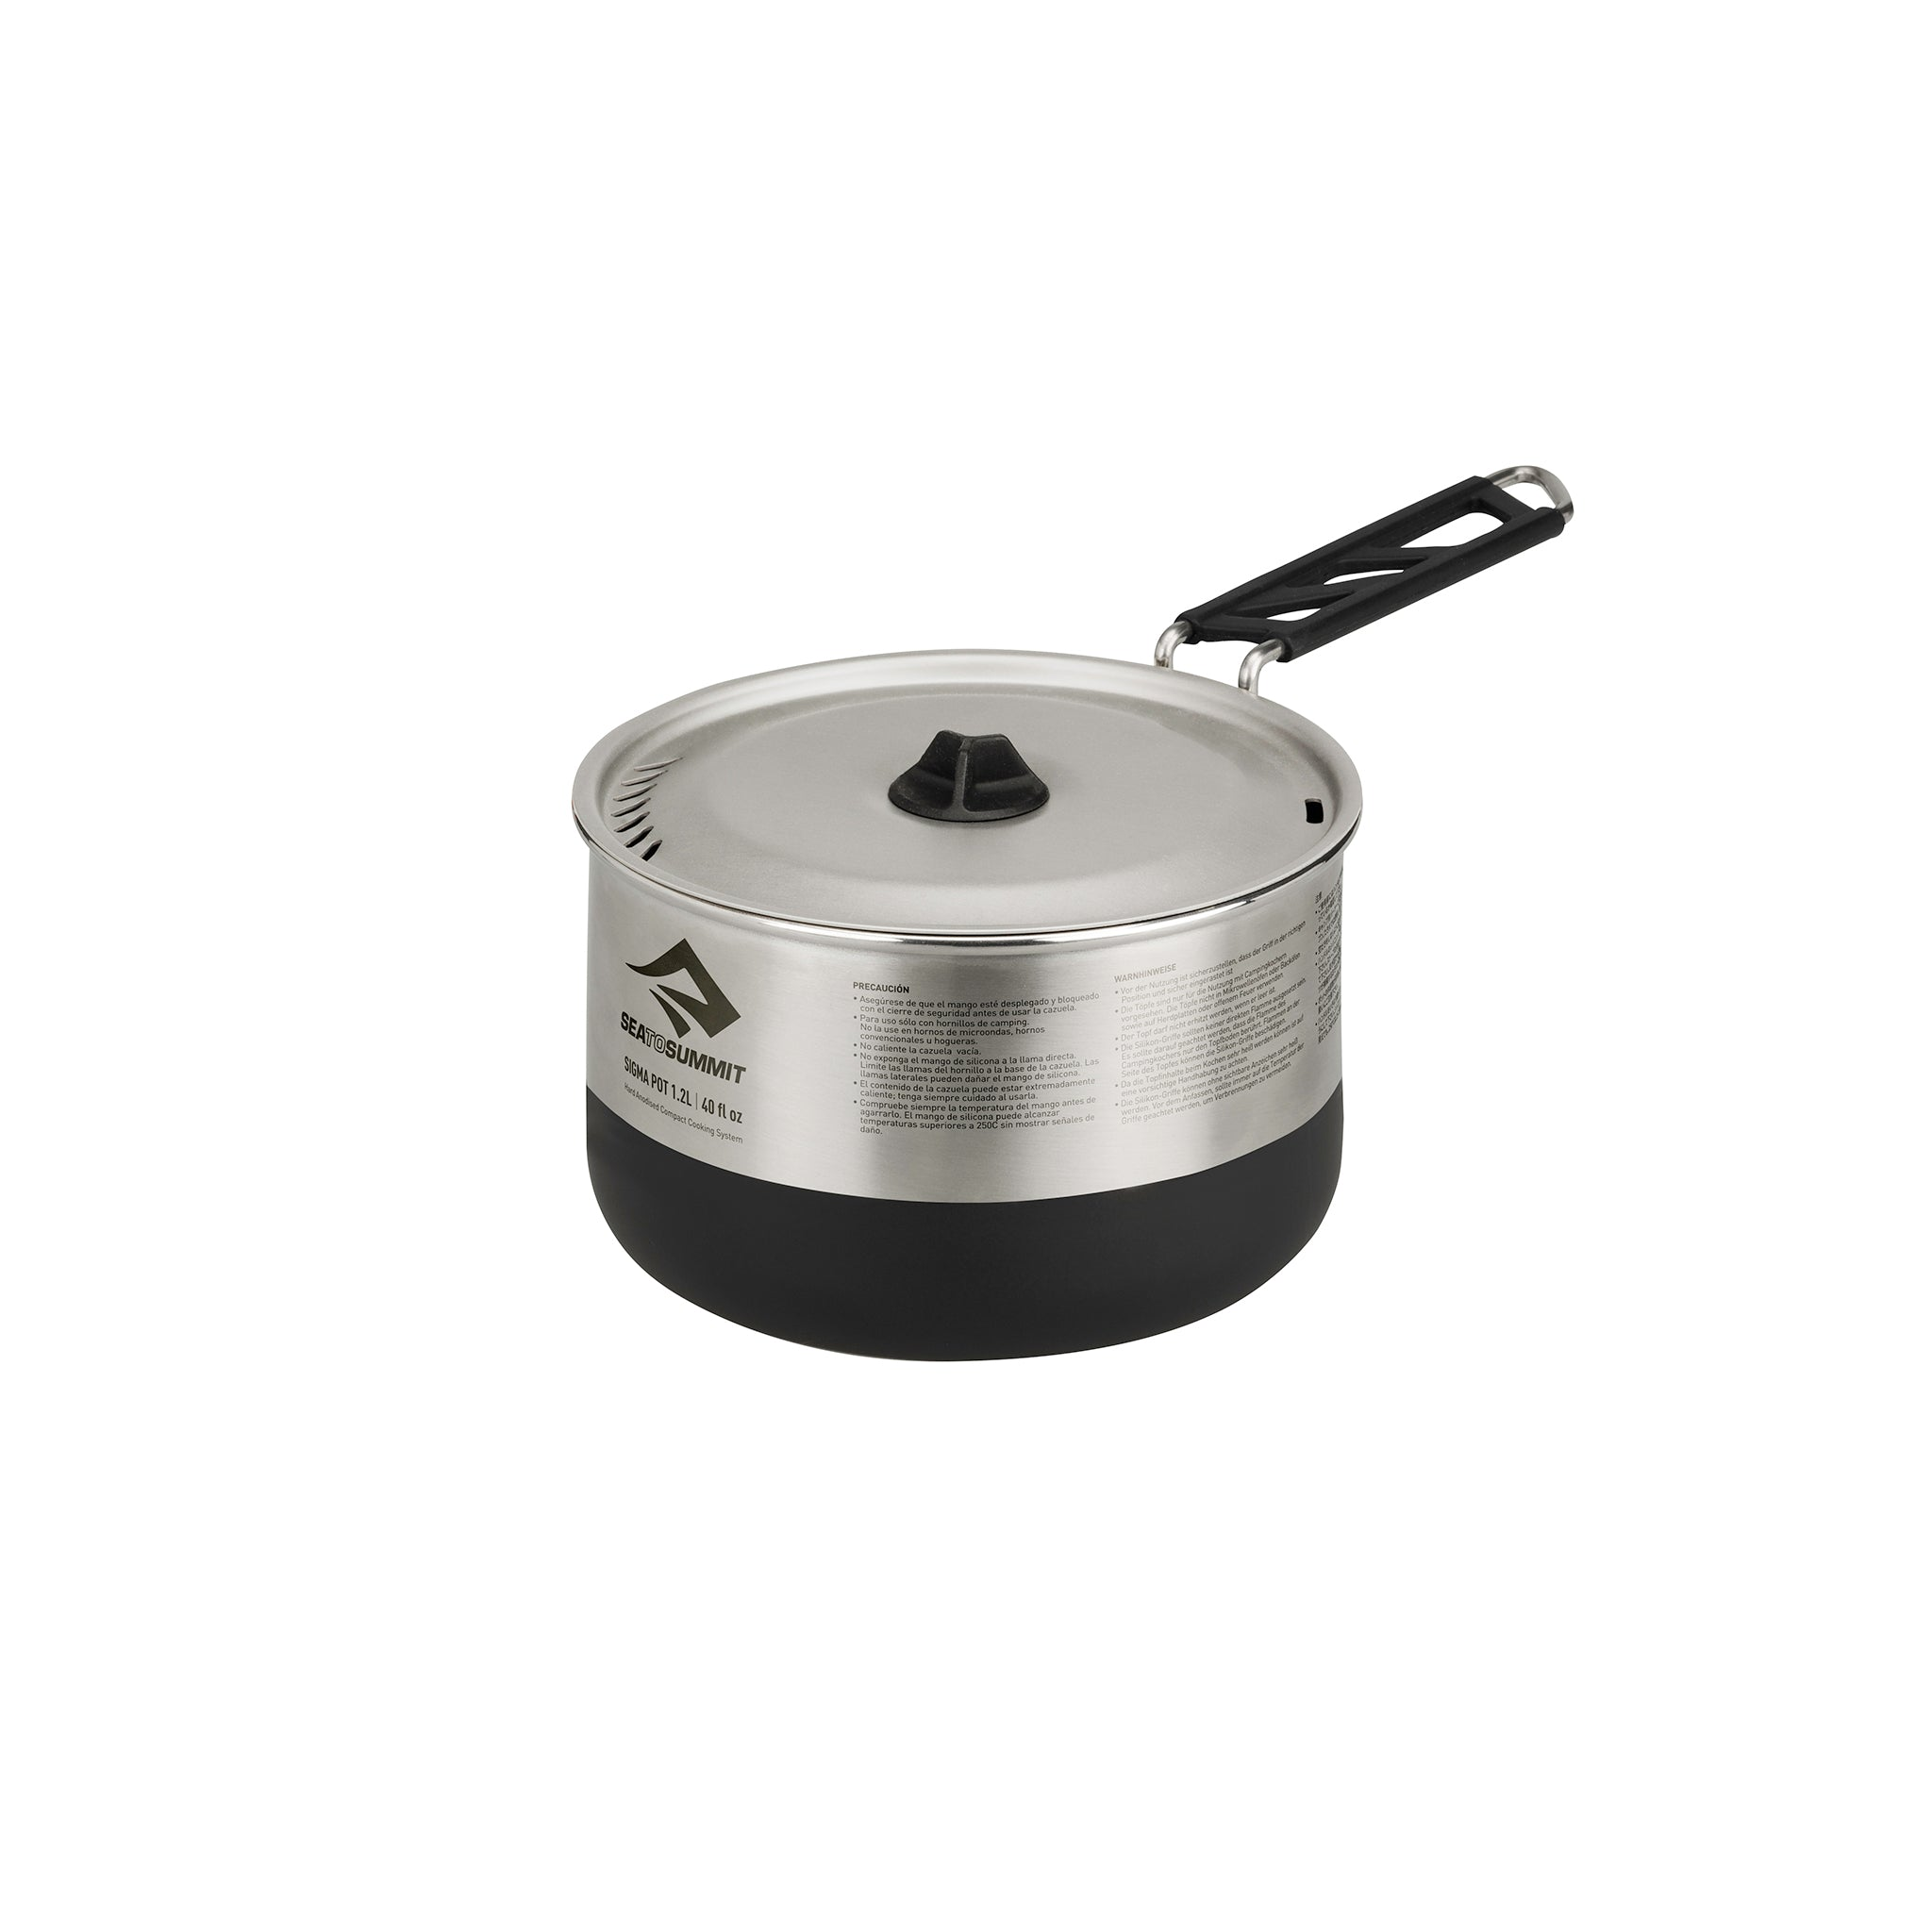 Sigma™ Stainless Steel Pot by Sea to Summit